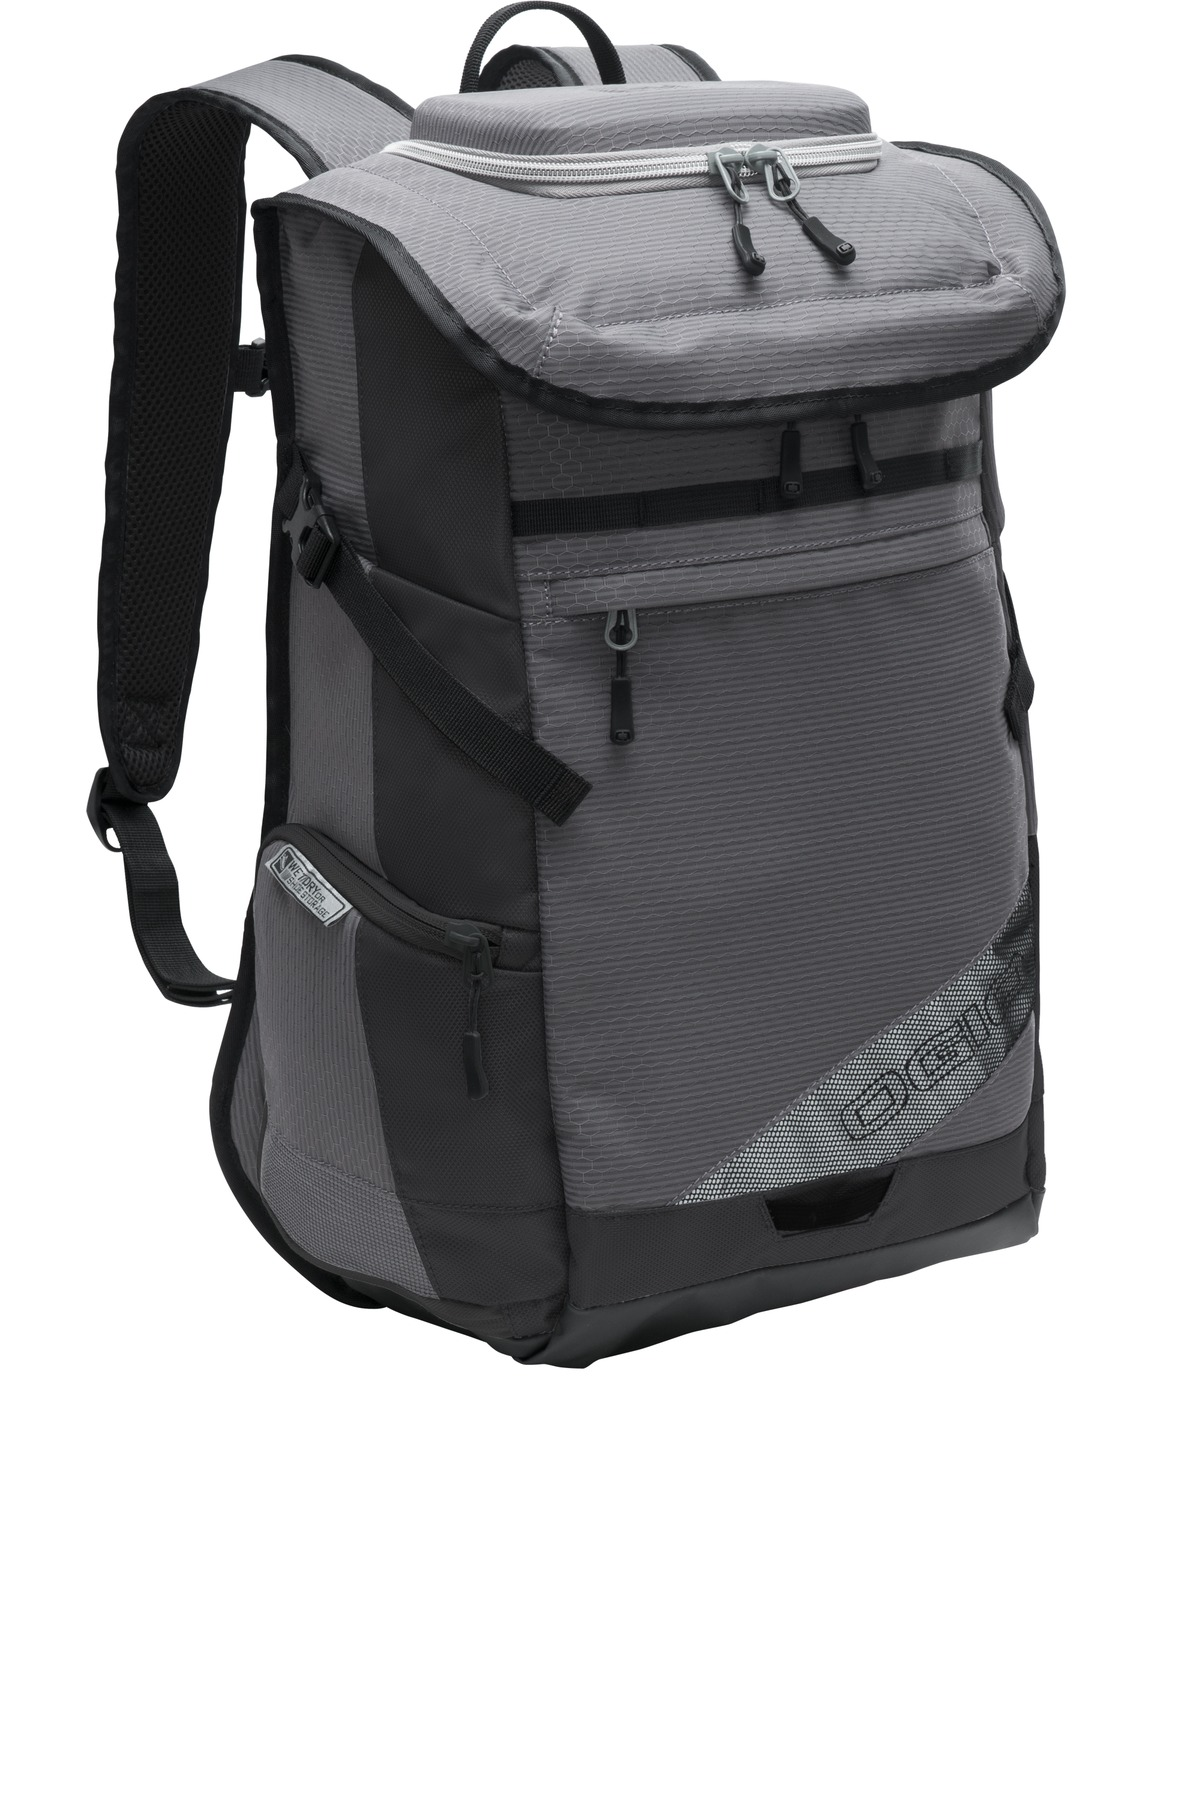 OGIO 412039 - X-Fit Pack - Bags